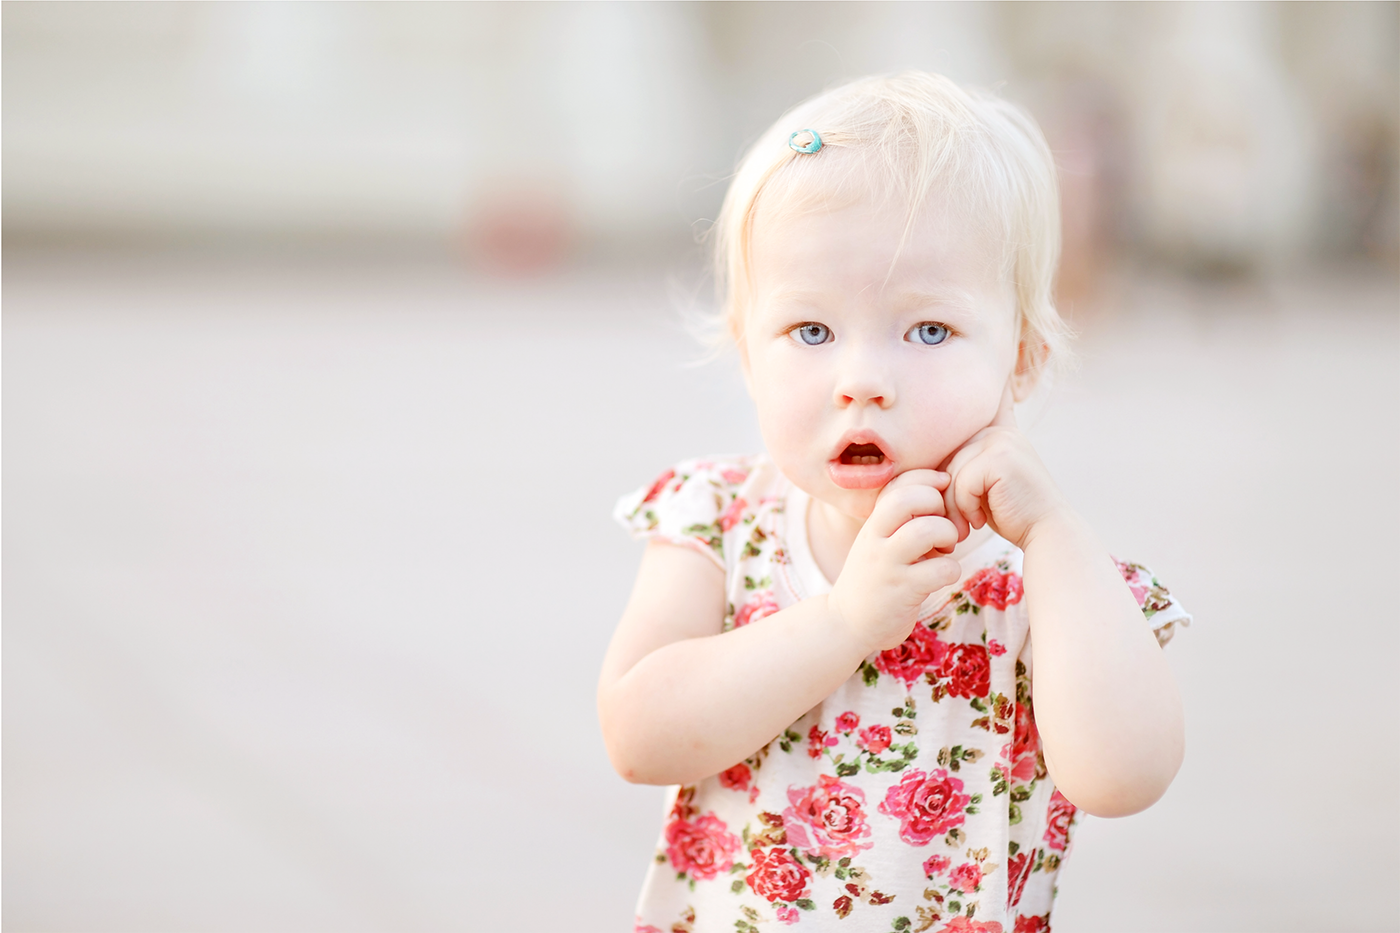 What do you do when your toddler disobeys you on purpose? Here are techniques on how to discipline a toddler who doesn't listen and deliberately disobeys.